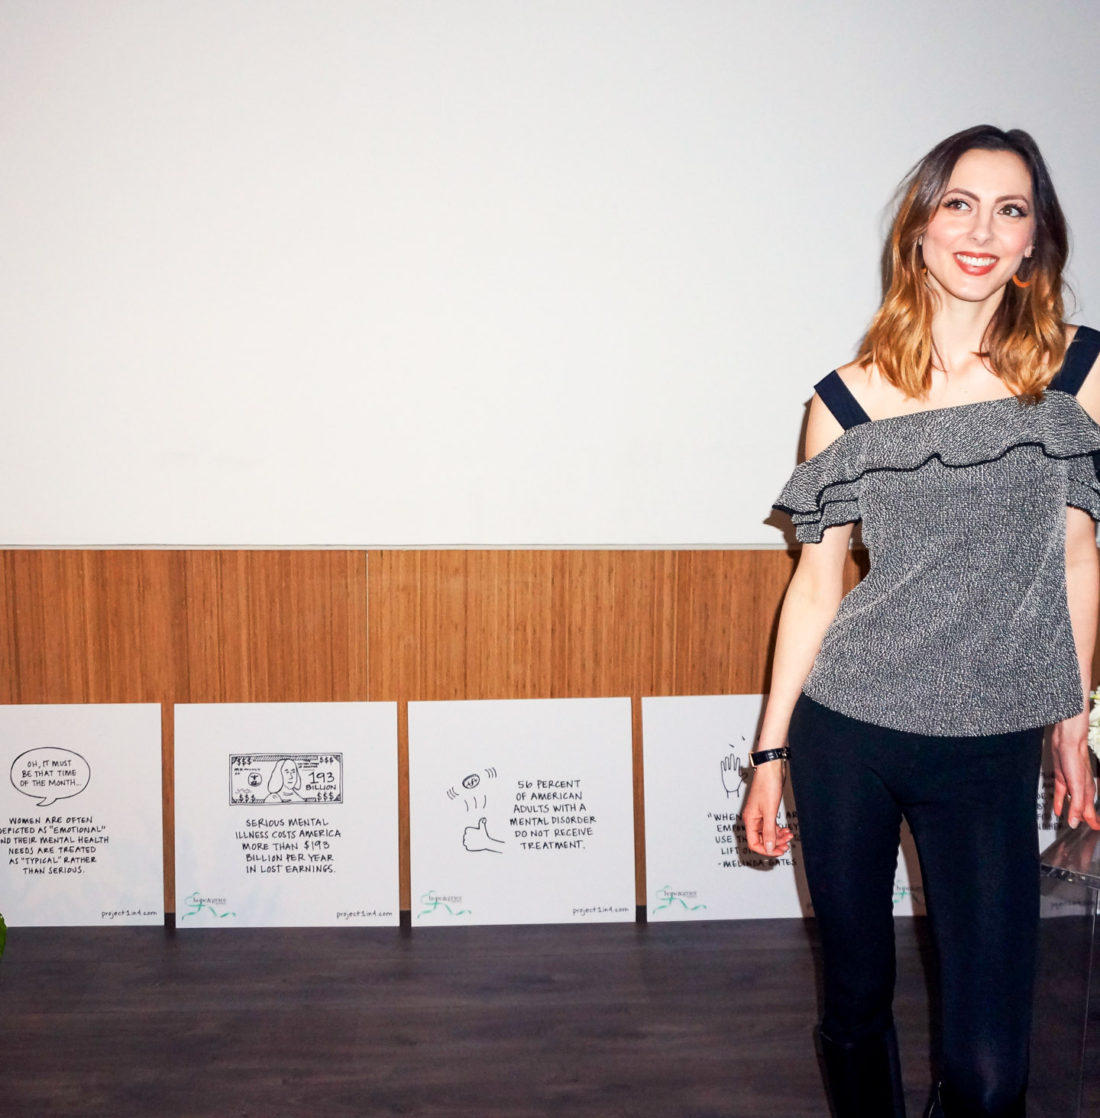 Eva Amurri Martino stands in The environment at Philosphy's Amazing Grace press day for the Hope and Grace initiative benefitting Mental Health awareness and support